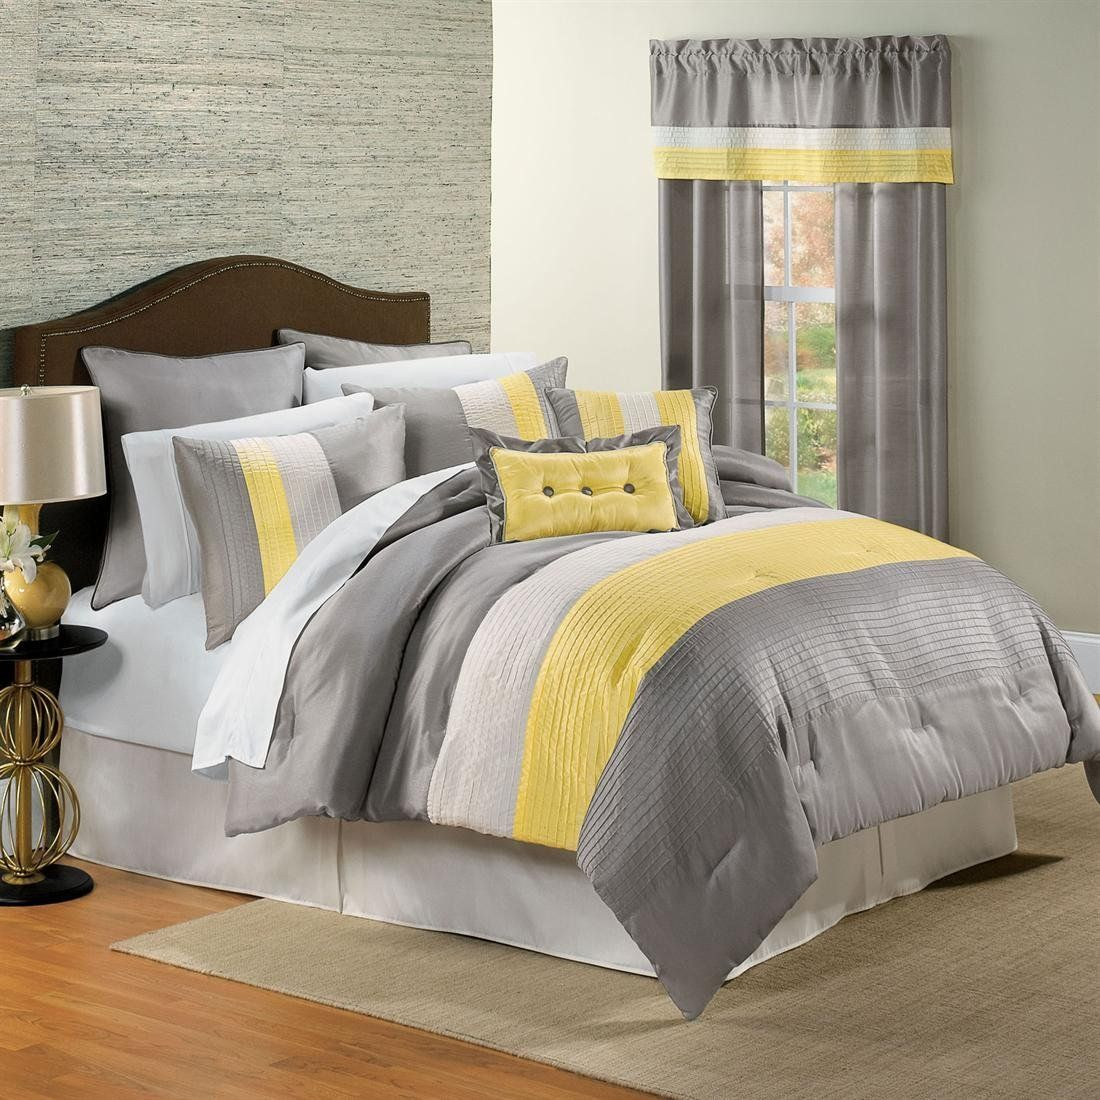 Delightful Yellow Gray Bedding Set